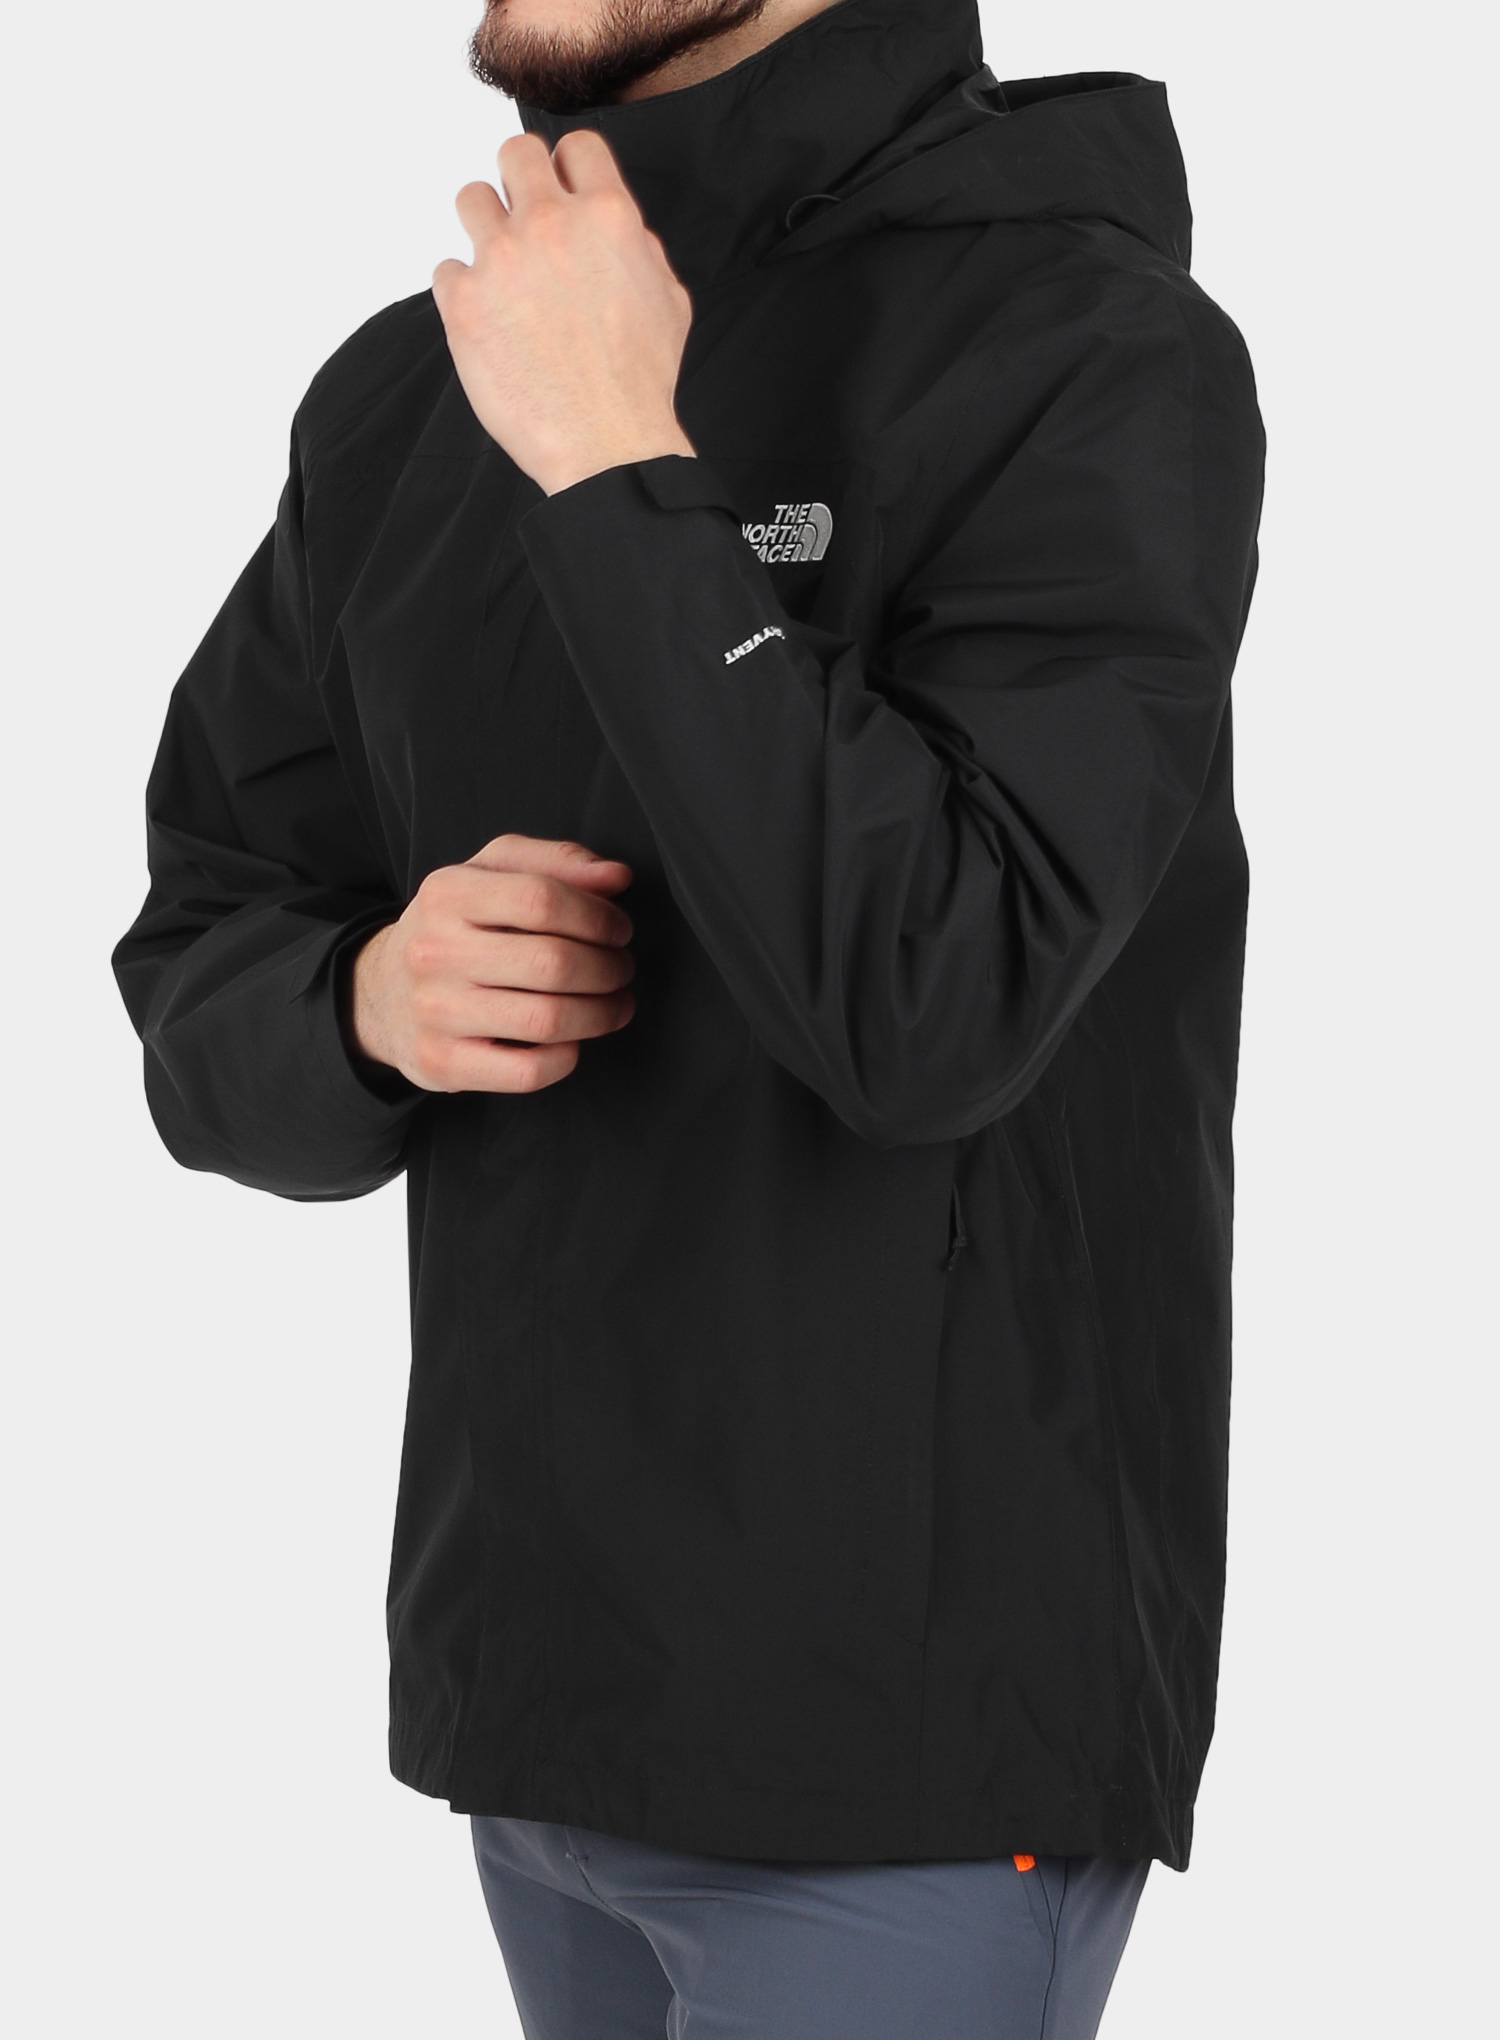 Kurtka The North Face Sangro Jacket - black - zdjęcie nr. 5